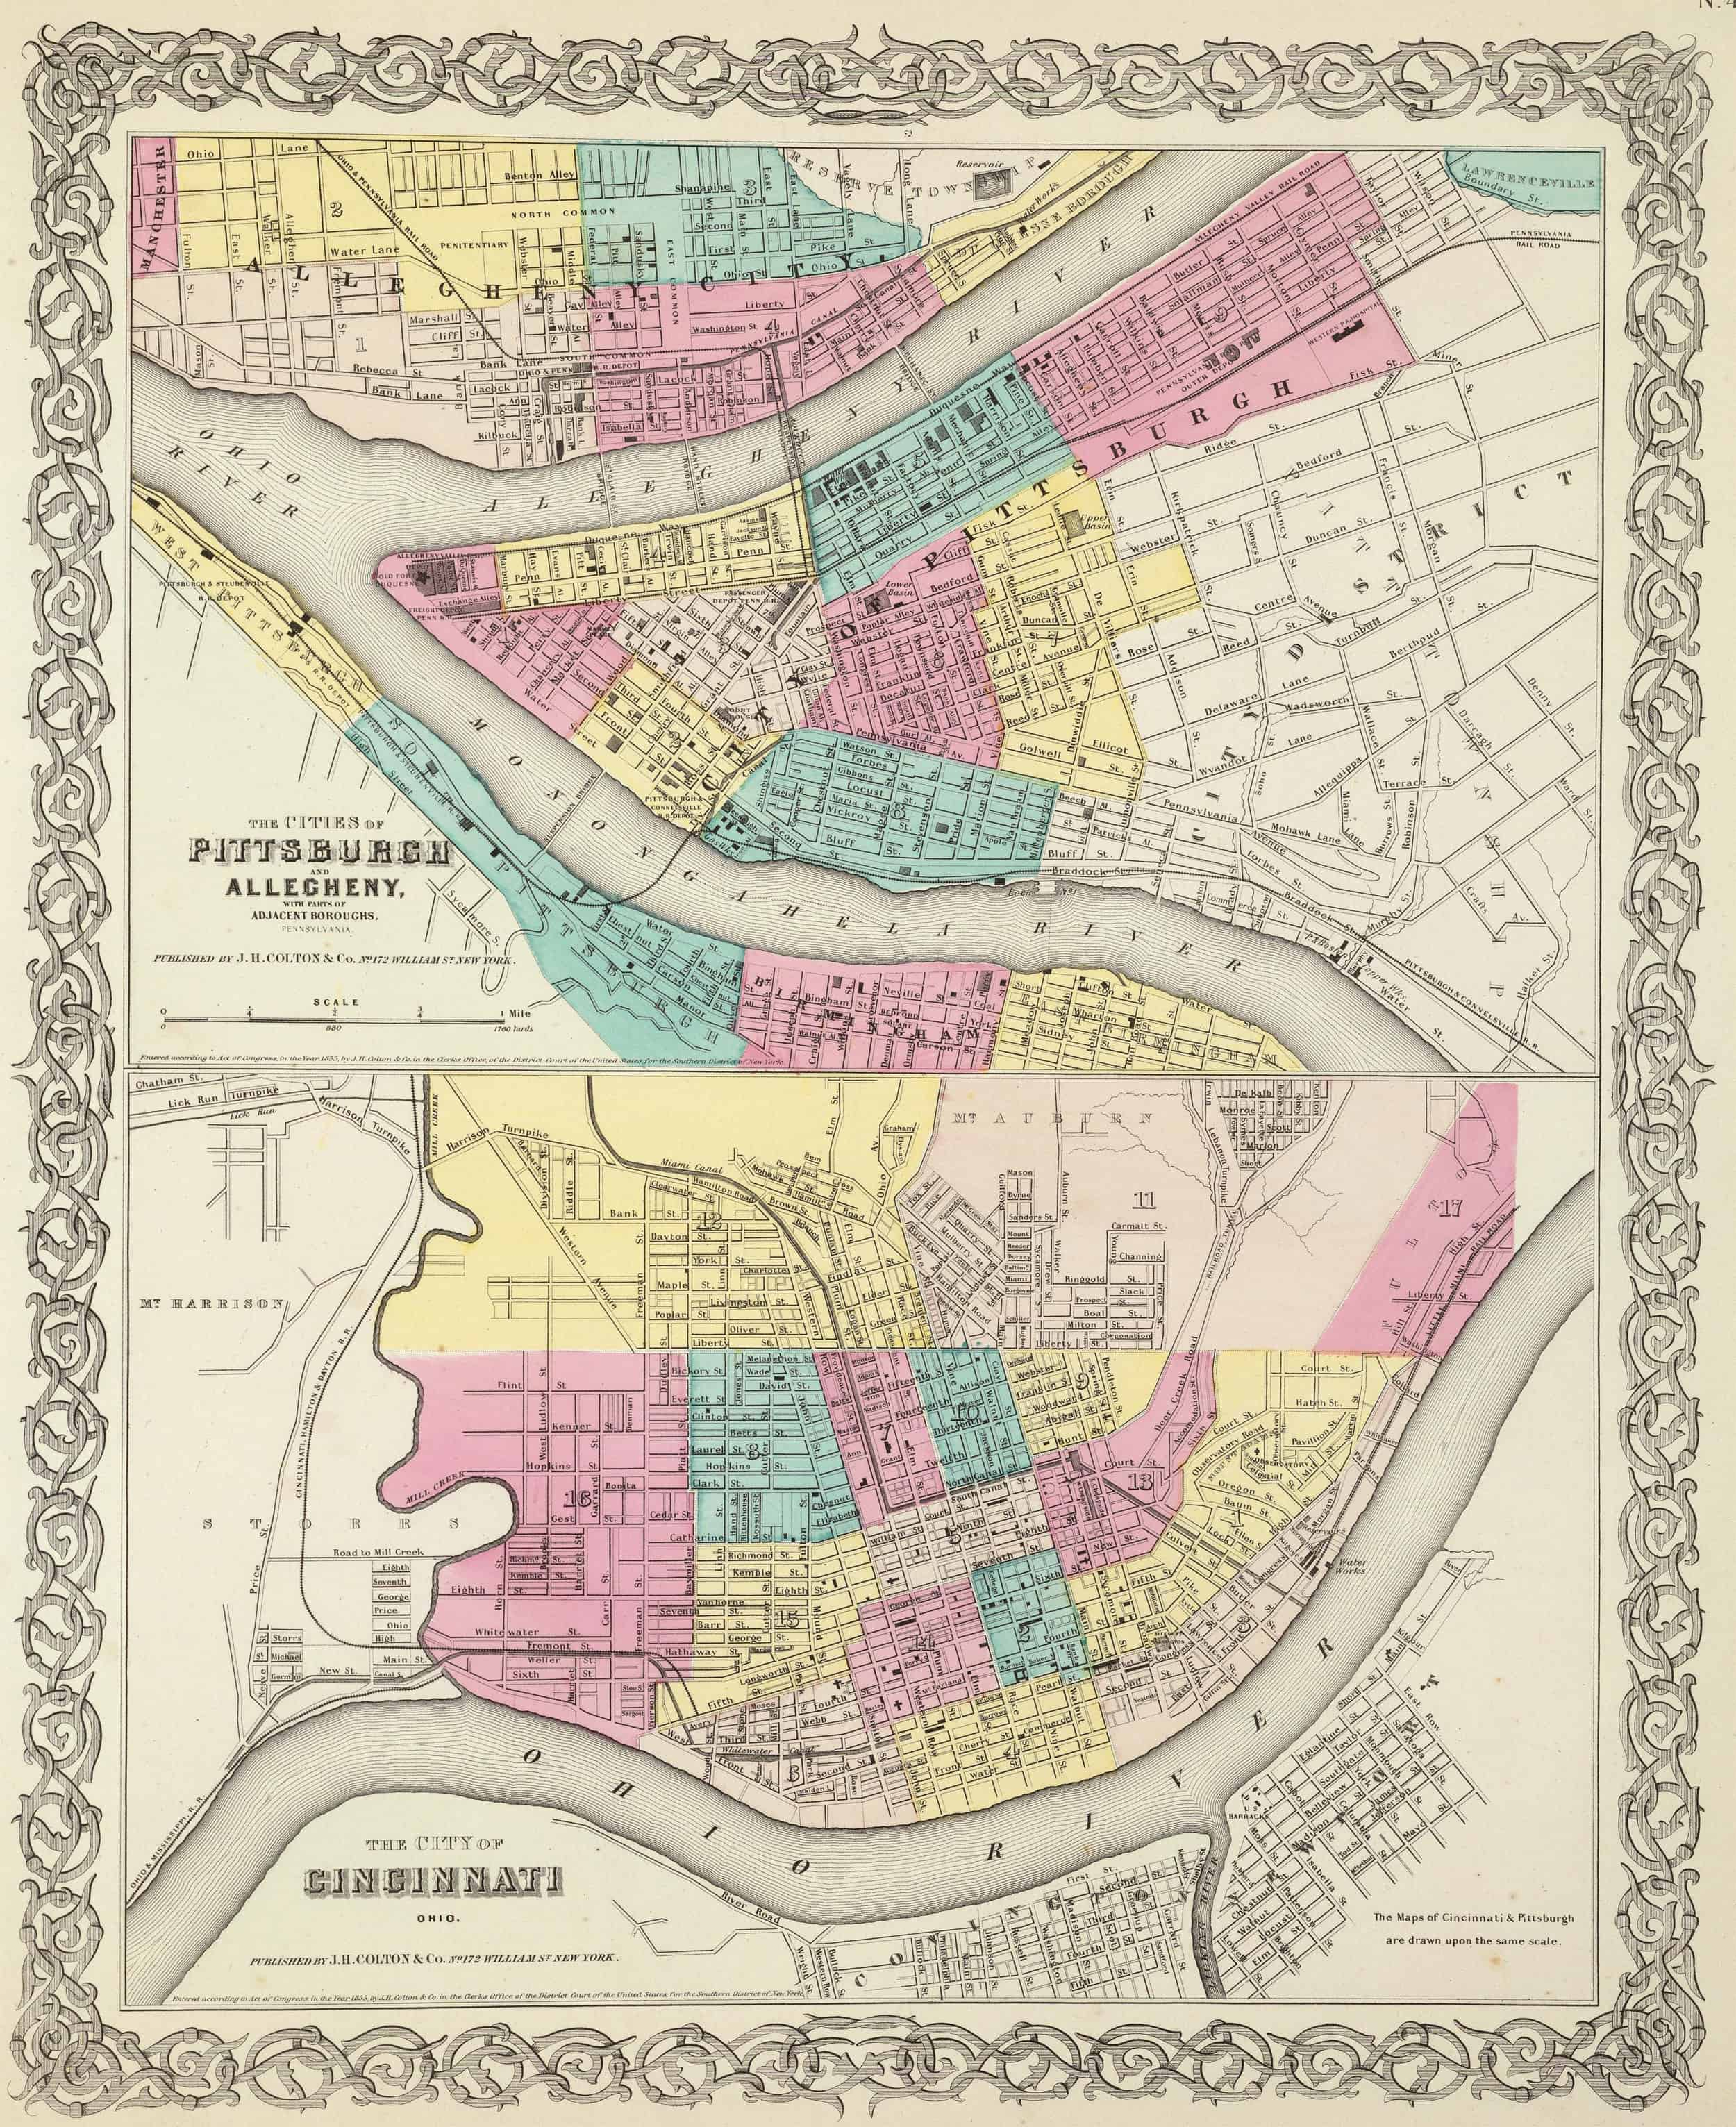 Old Historical City, County and State Maps of Ohio on map of of ohio, large maps of ohio with rivers, travel map of ohio, business map of ohio, general map of ohio, printable road map of ohio, transportation map of ohio, military map of ohio, reference map of ohio,